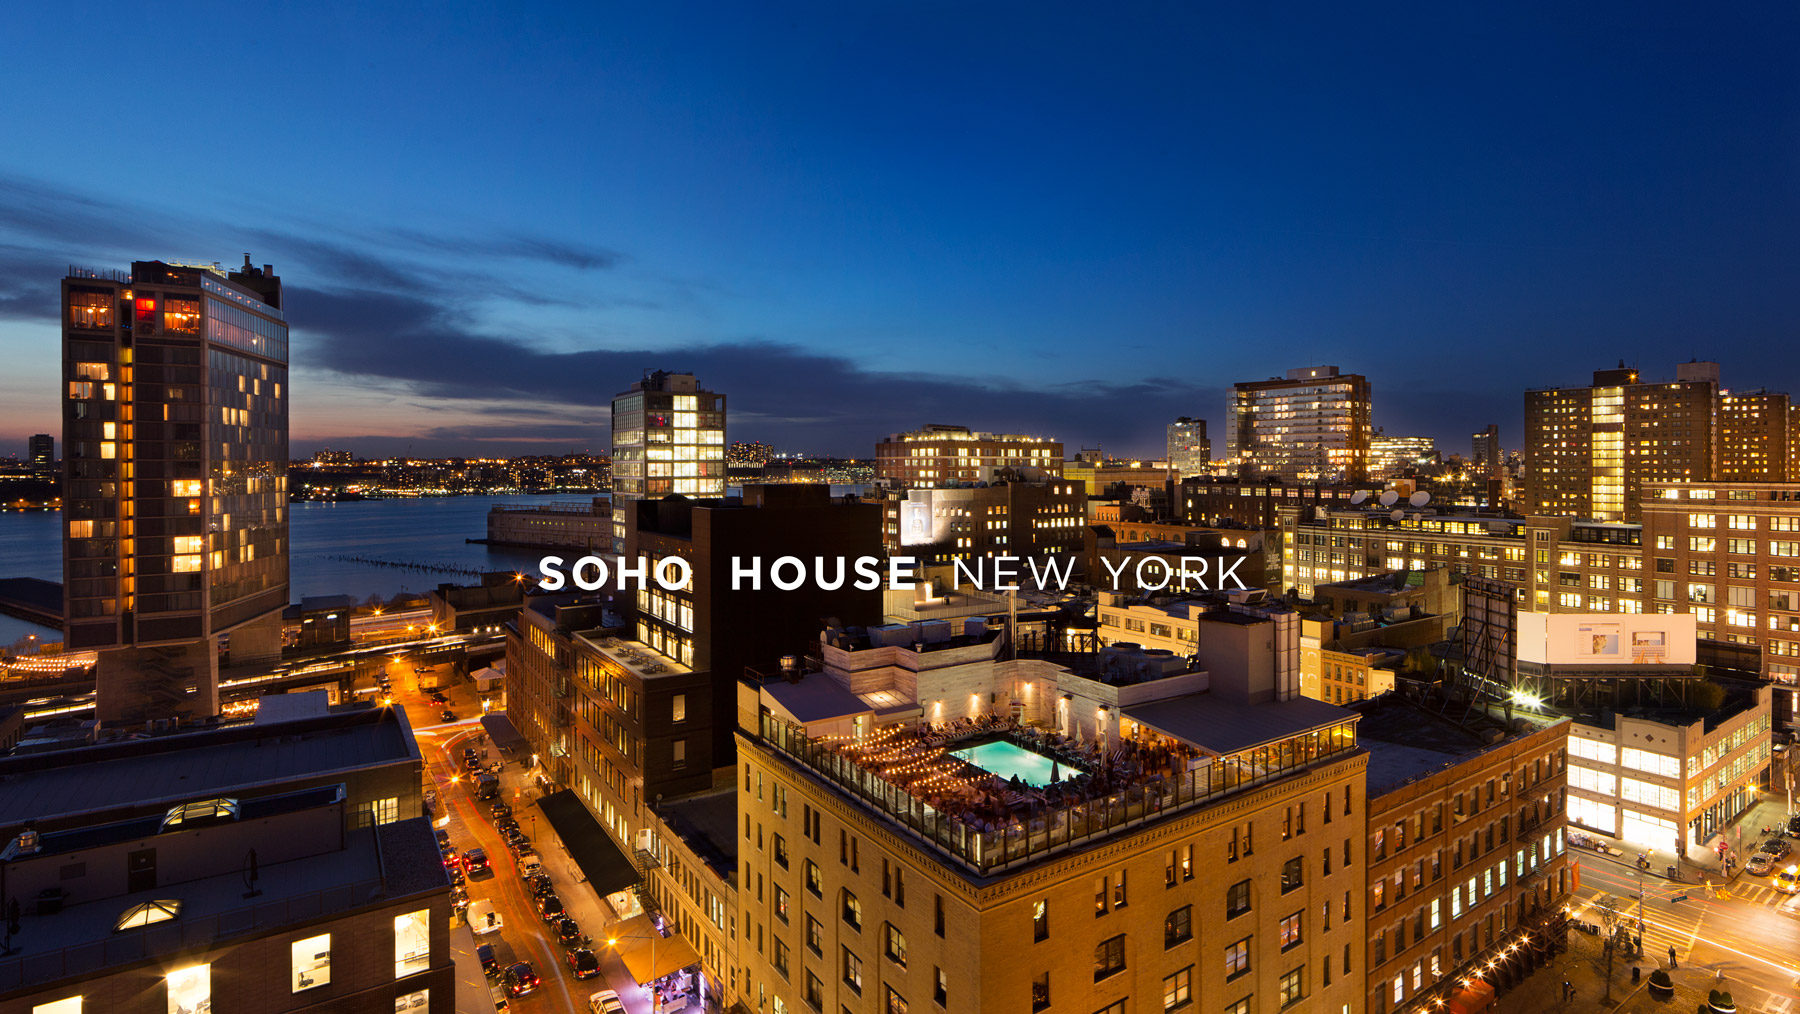 Soho_House_NY_head